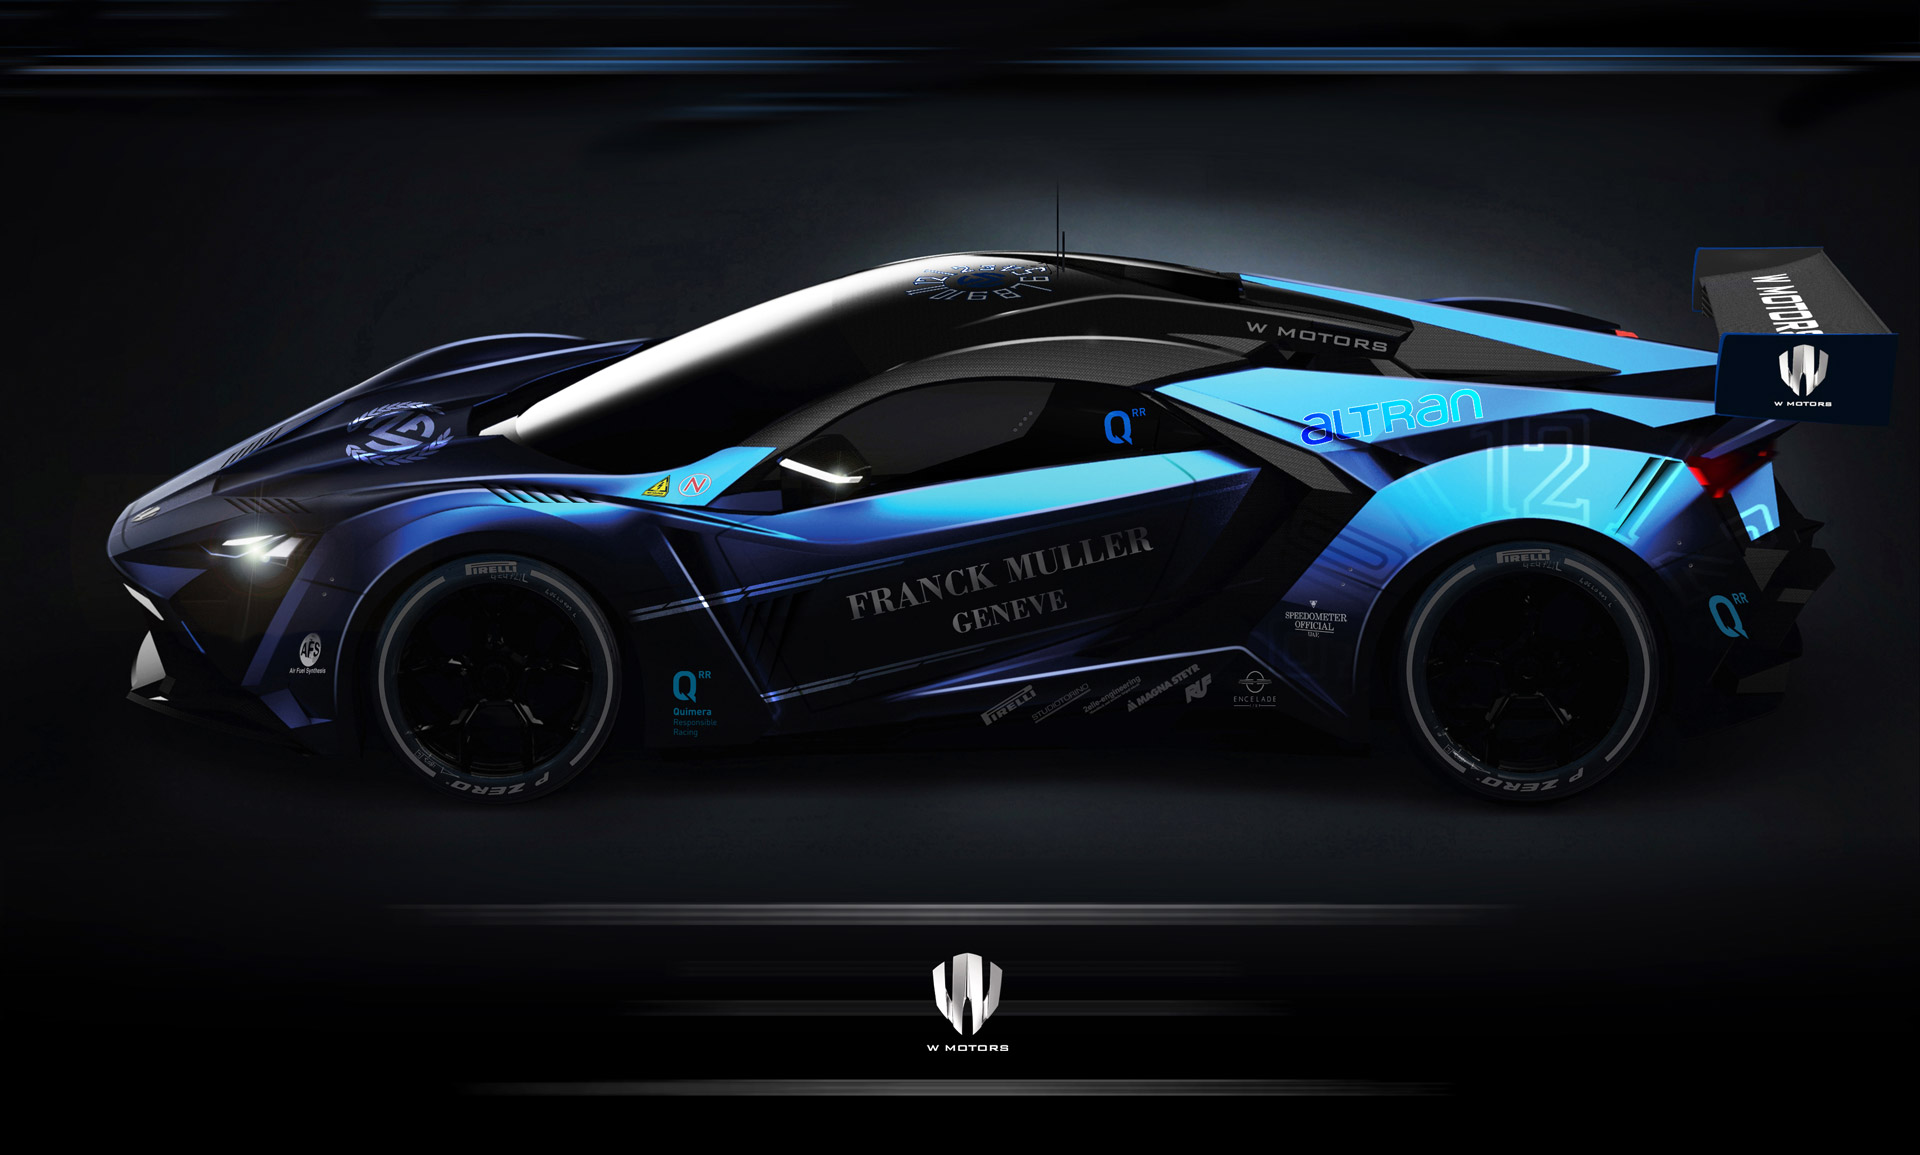 W Motors Teams Up With Quimera To Develop Eco Friendly